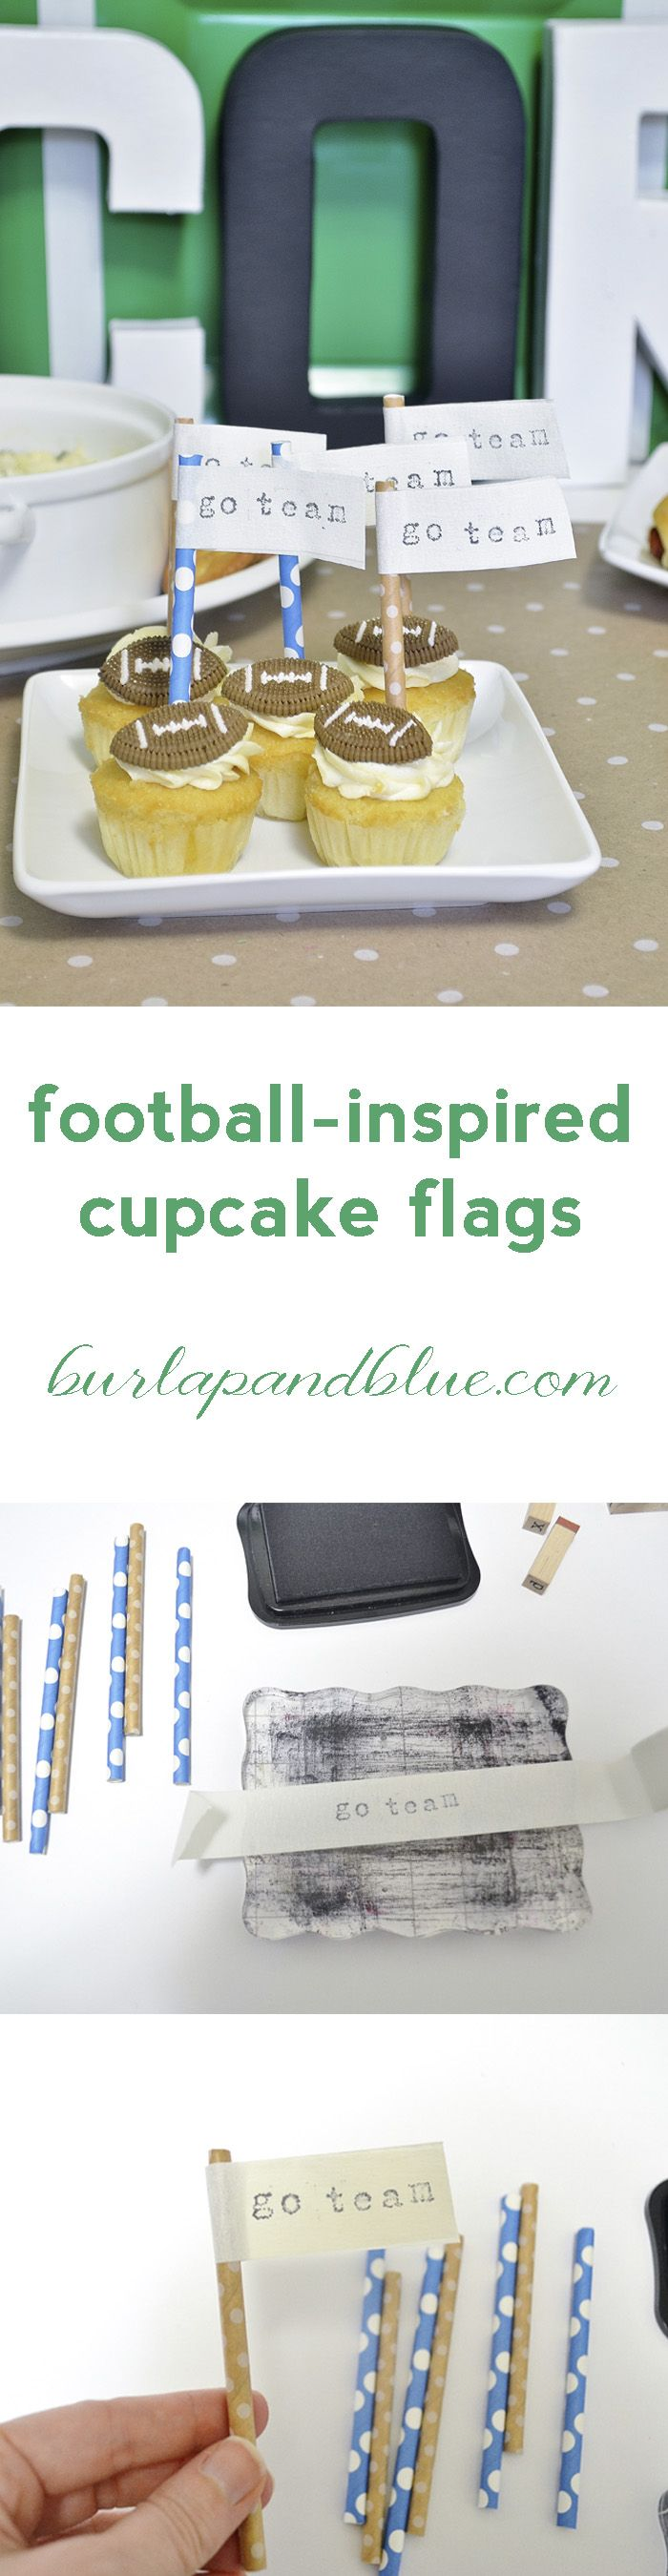 easy football inspired cupcake flags!